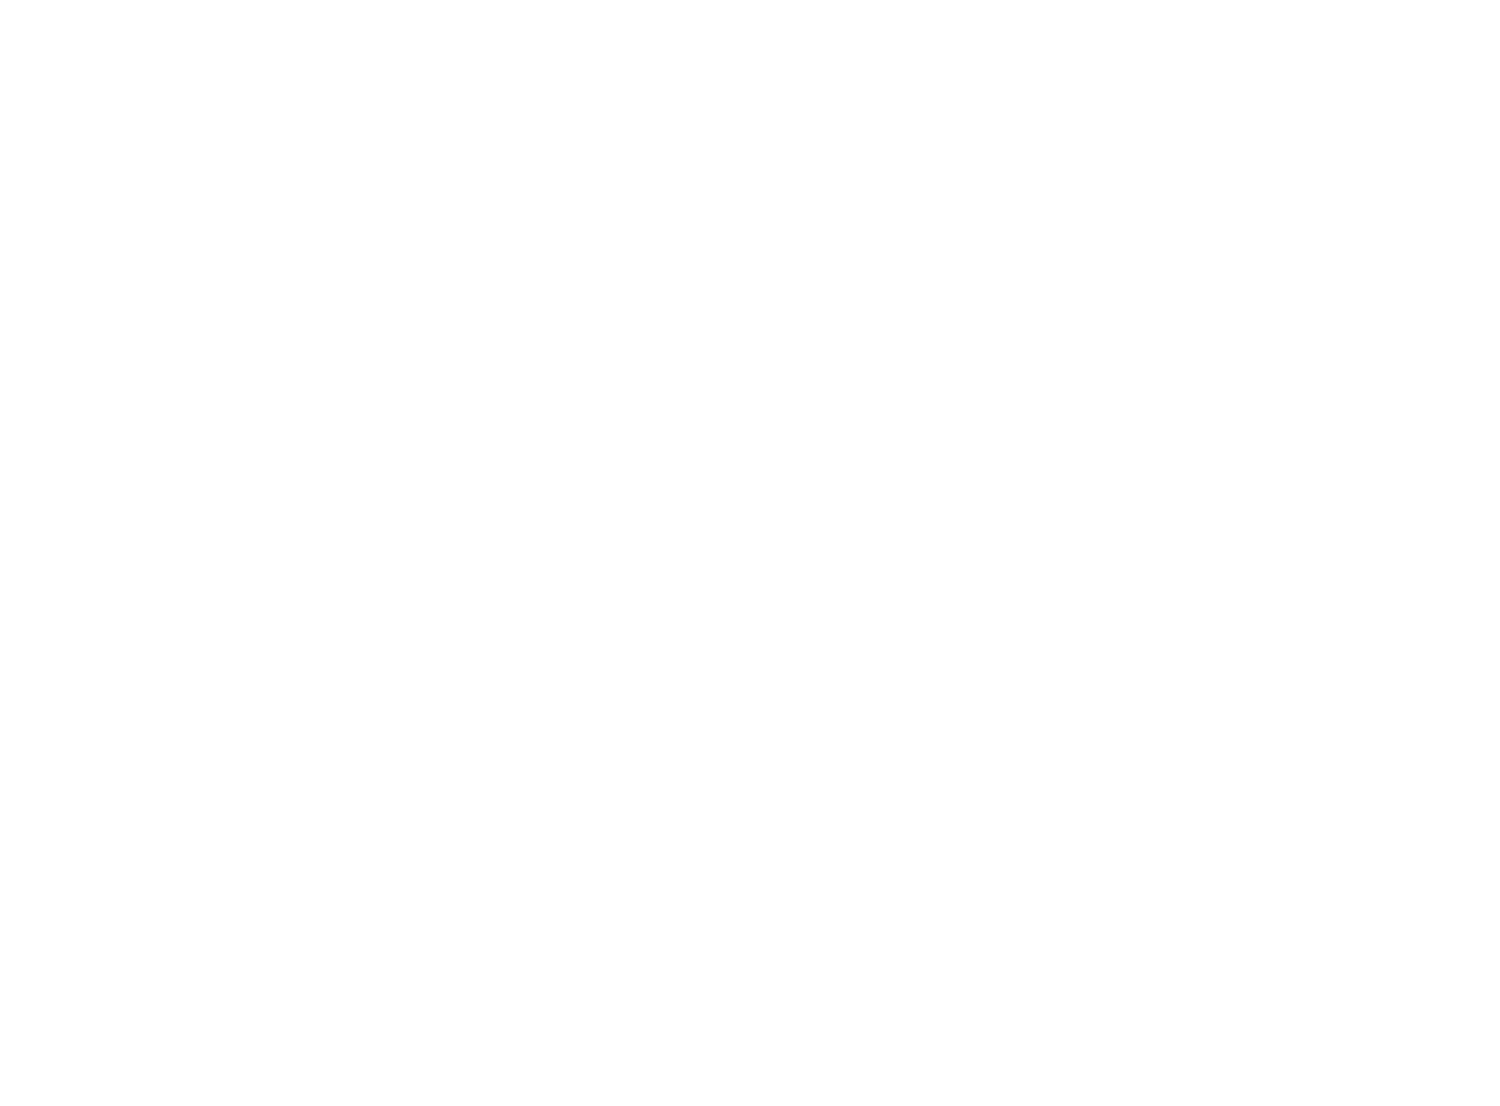 Salmon River Experience